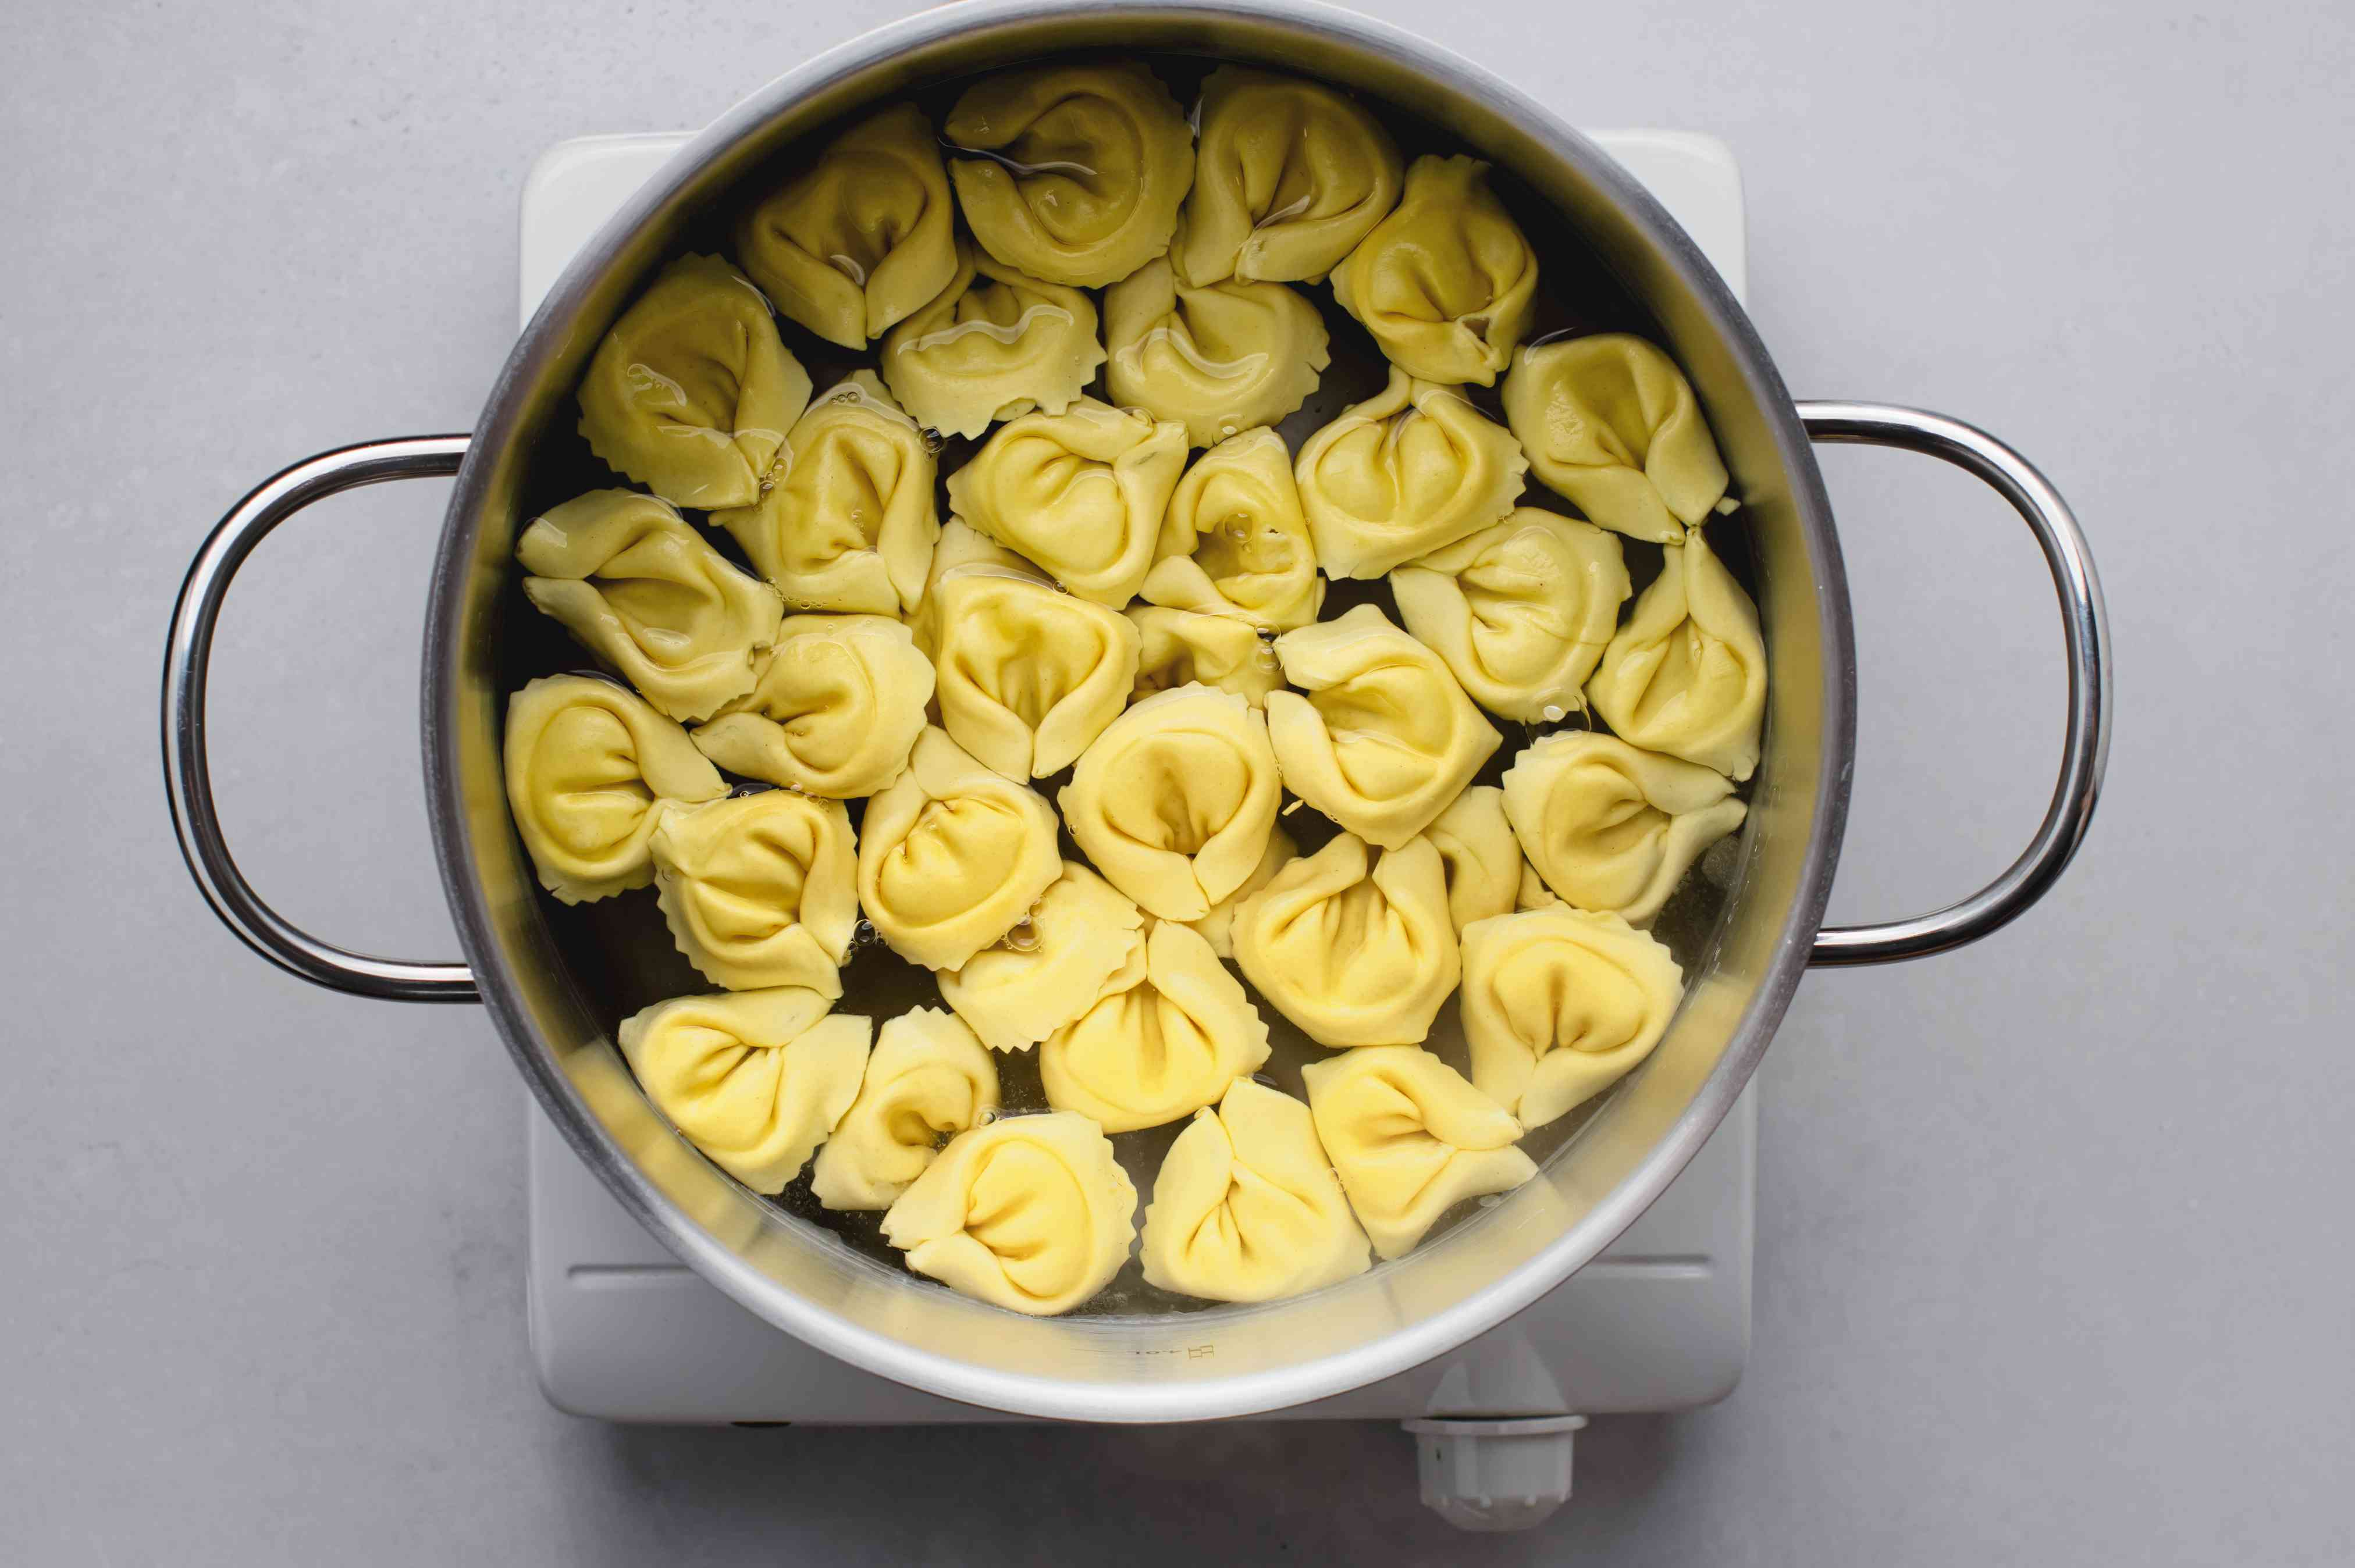 Cook the tortellini in a pot with water